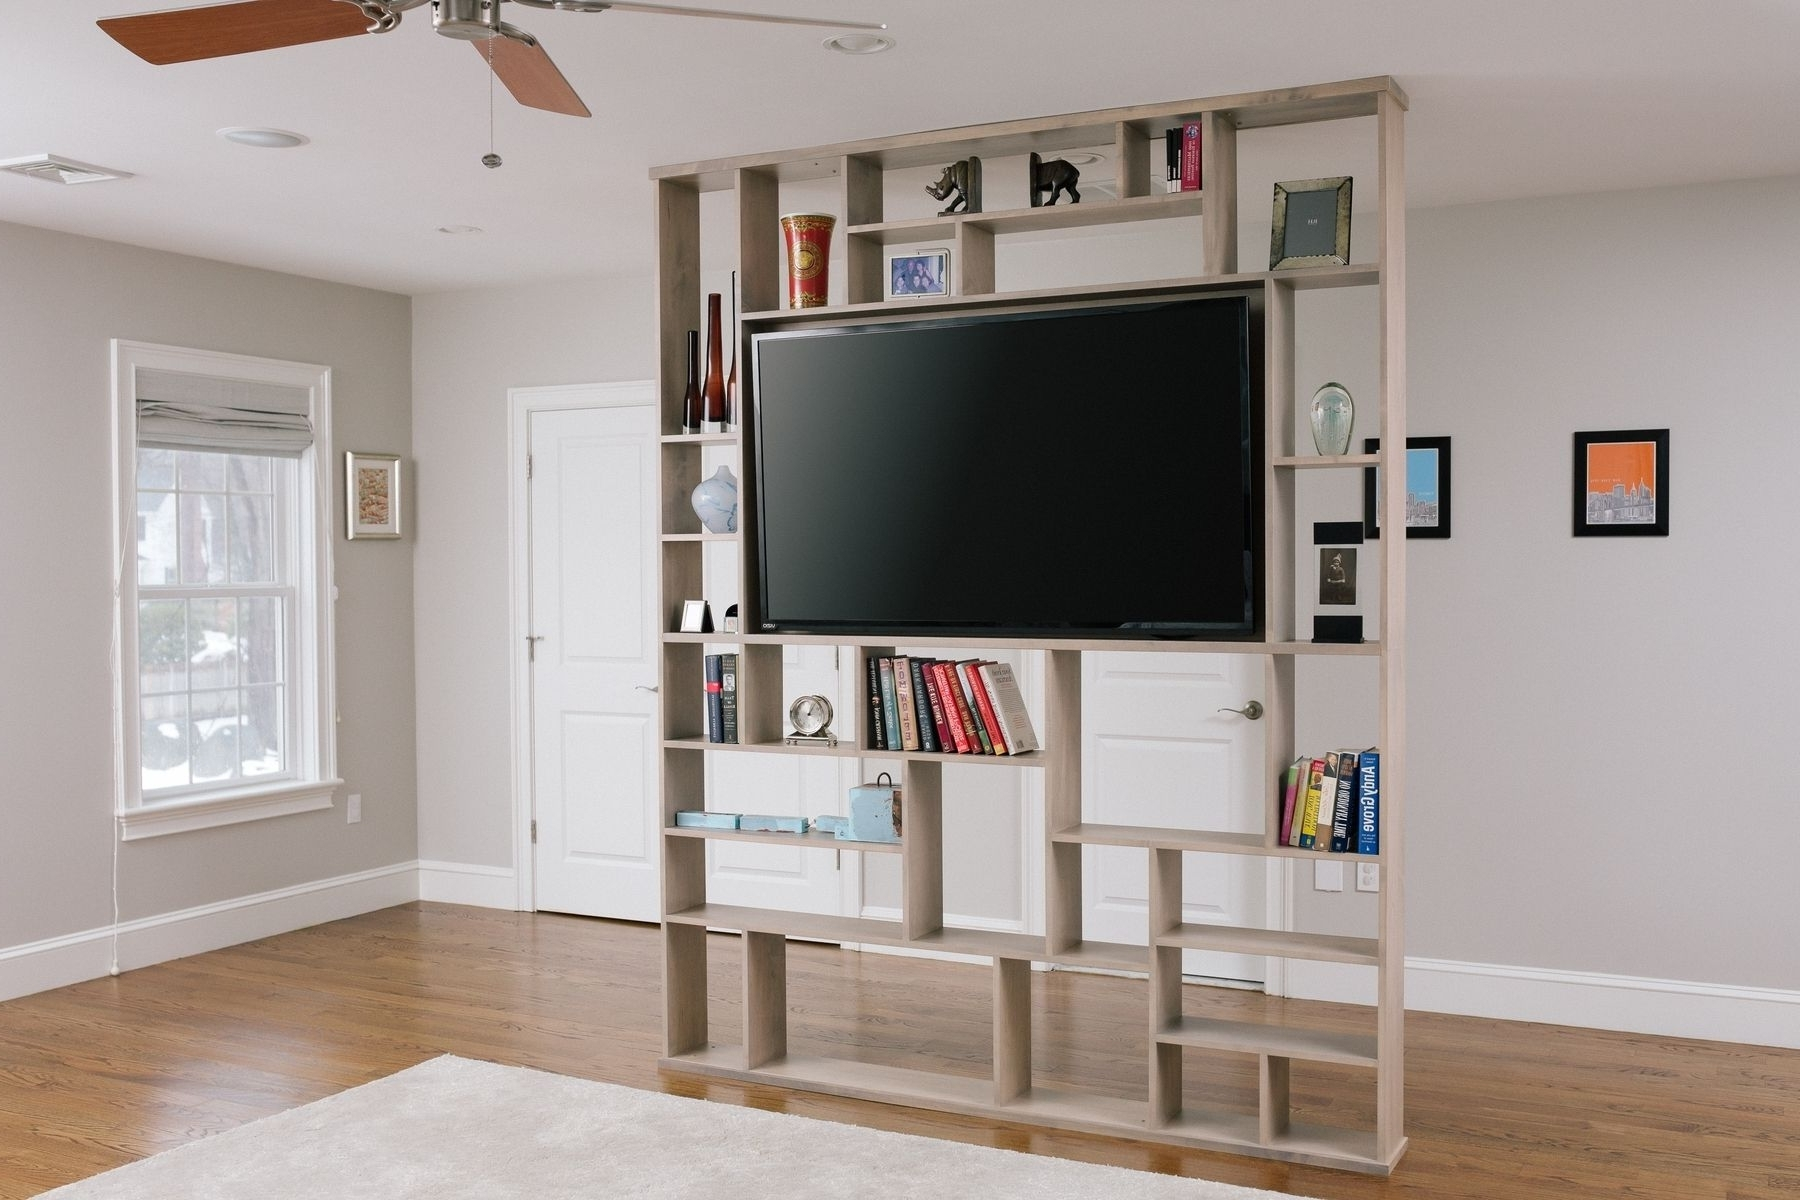 Widely Used Hand Crafted Lexington Room Divider / Bookshelf / Tv Standcorl For Bookshelves Tv (View 4 of 15)